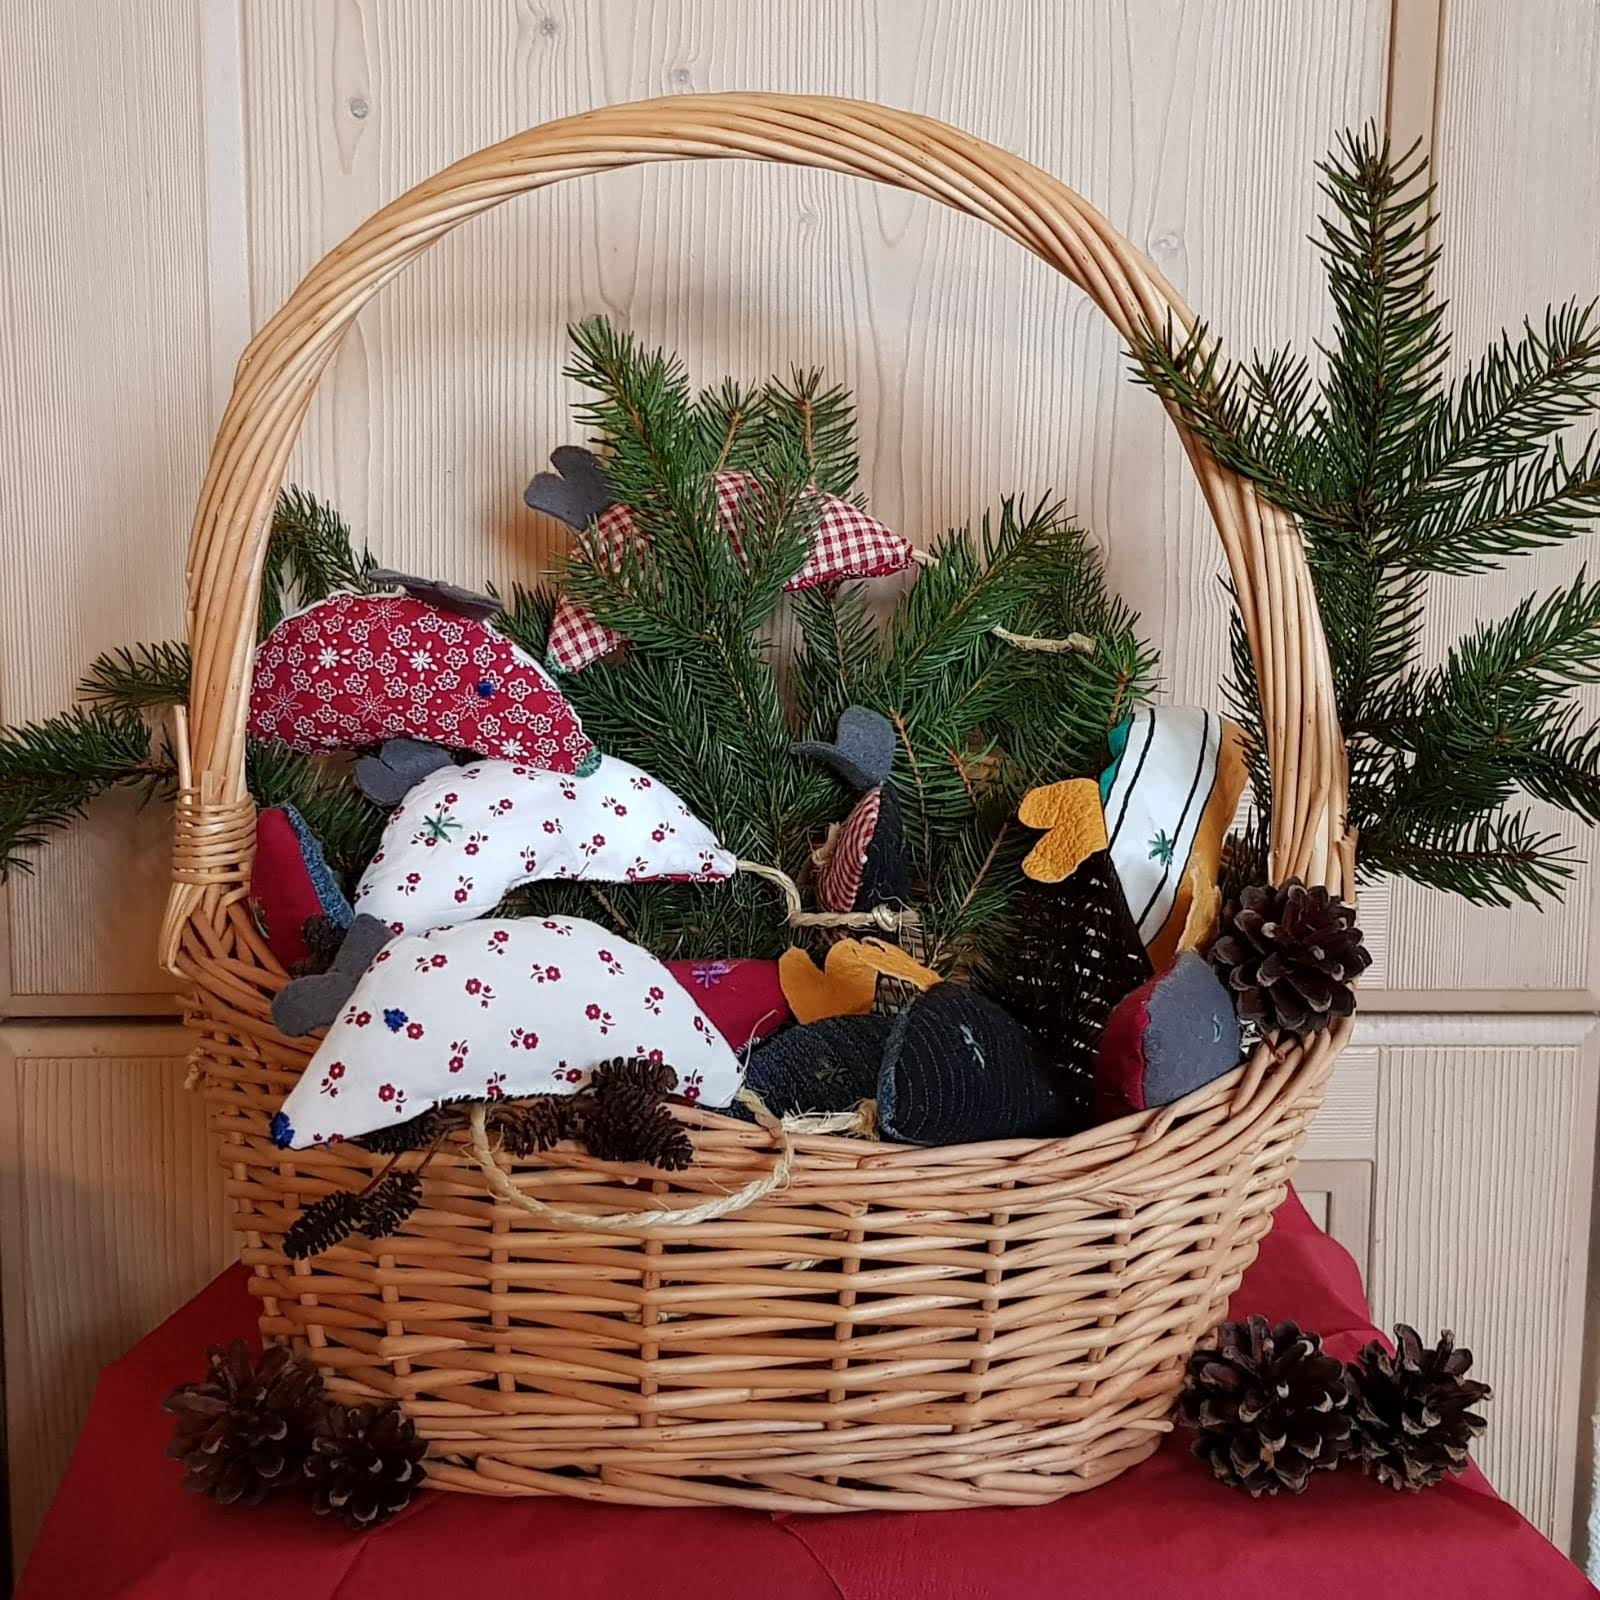 Stinkemäuse, Adventskalender 2019